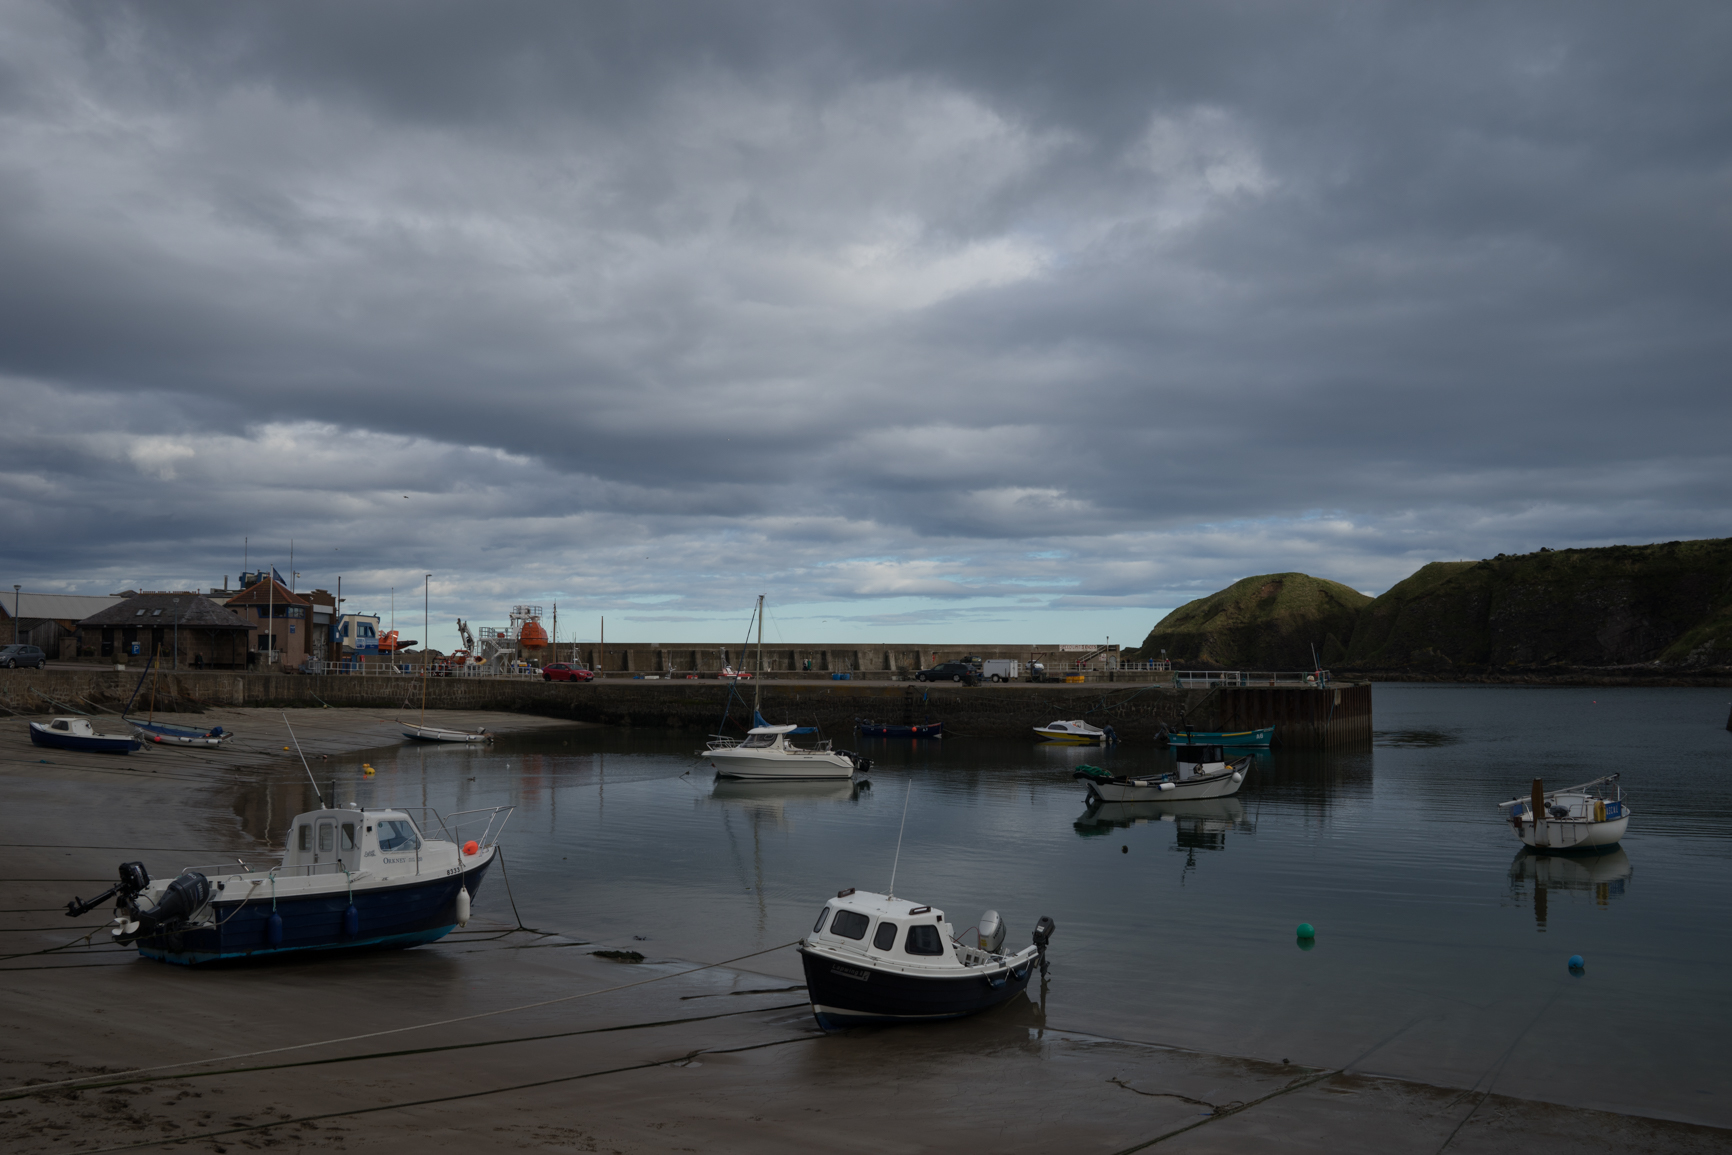 Stonehaven, Scotland - straight out of camera, before I make my adjustments